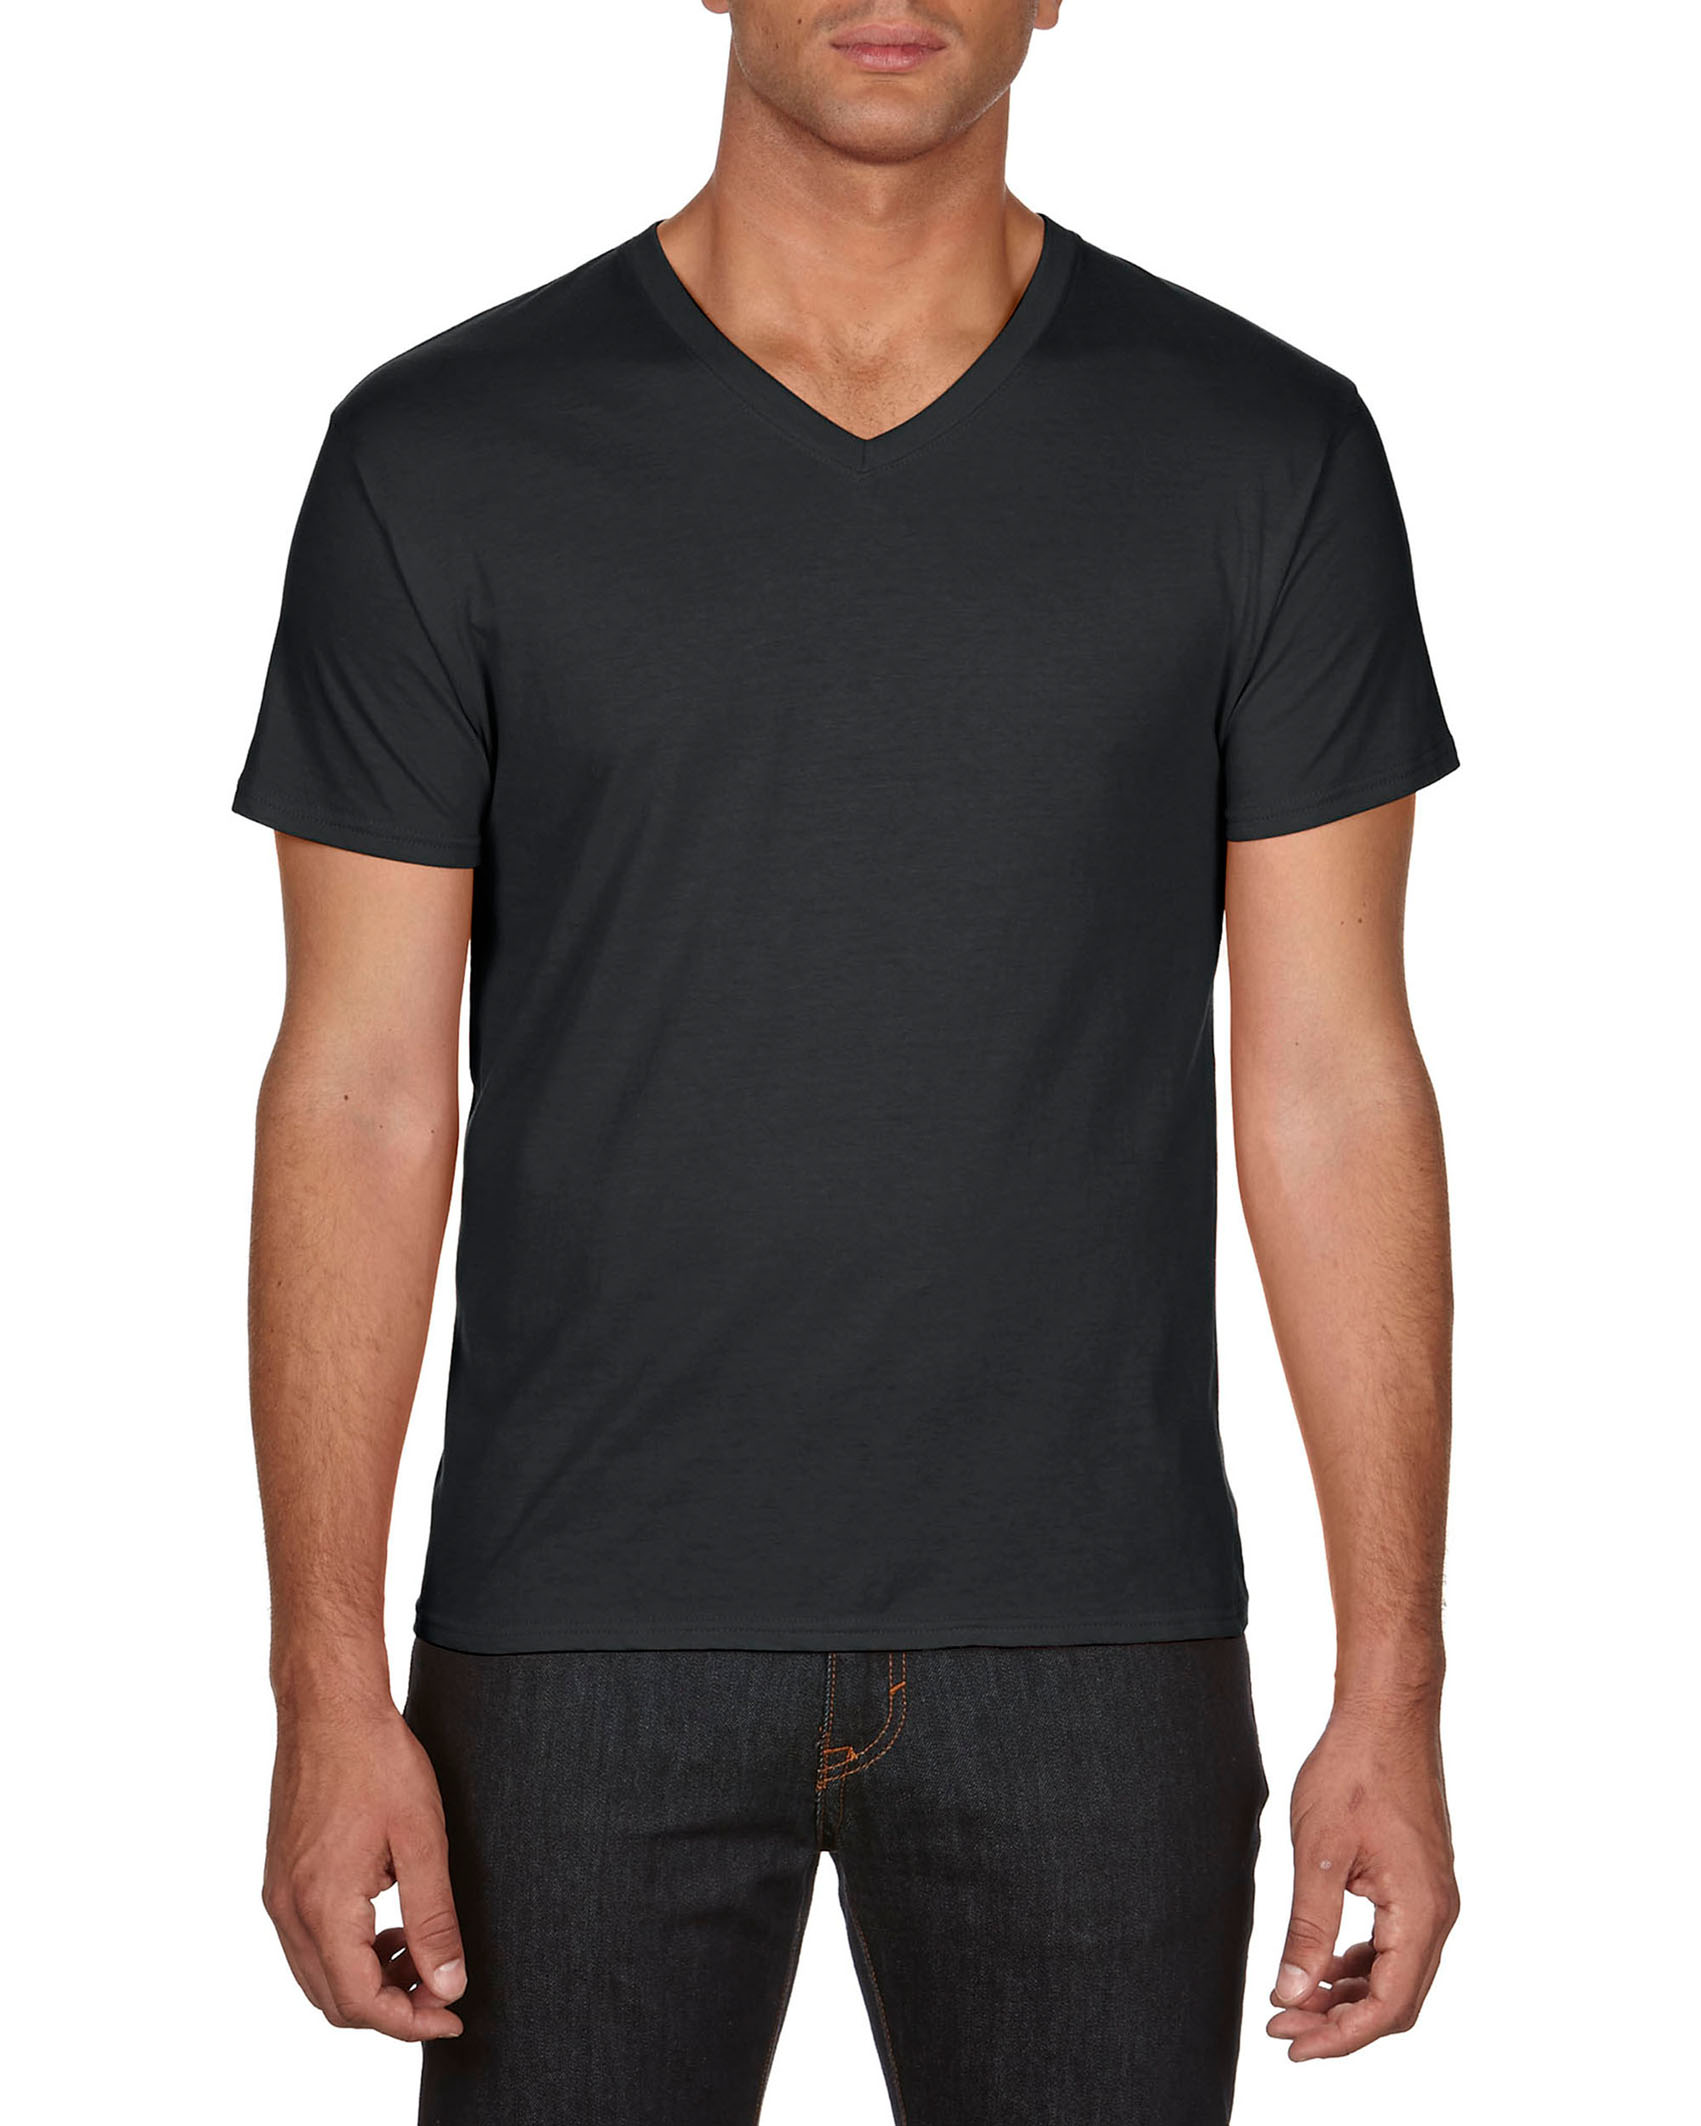 Anvil T-shirt Featherweight V-neck SS for him black XL